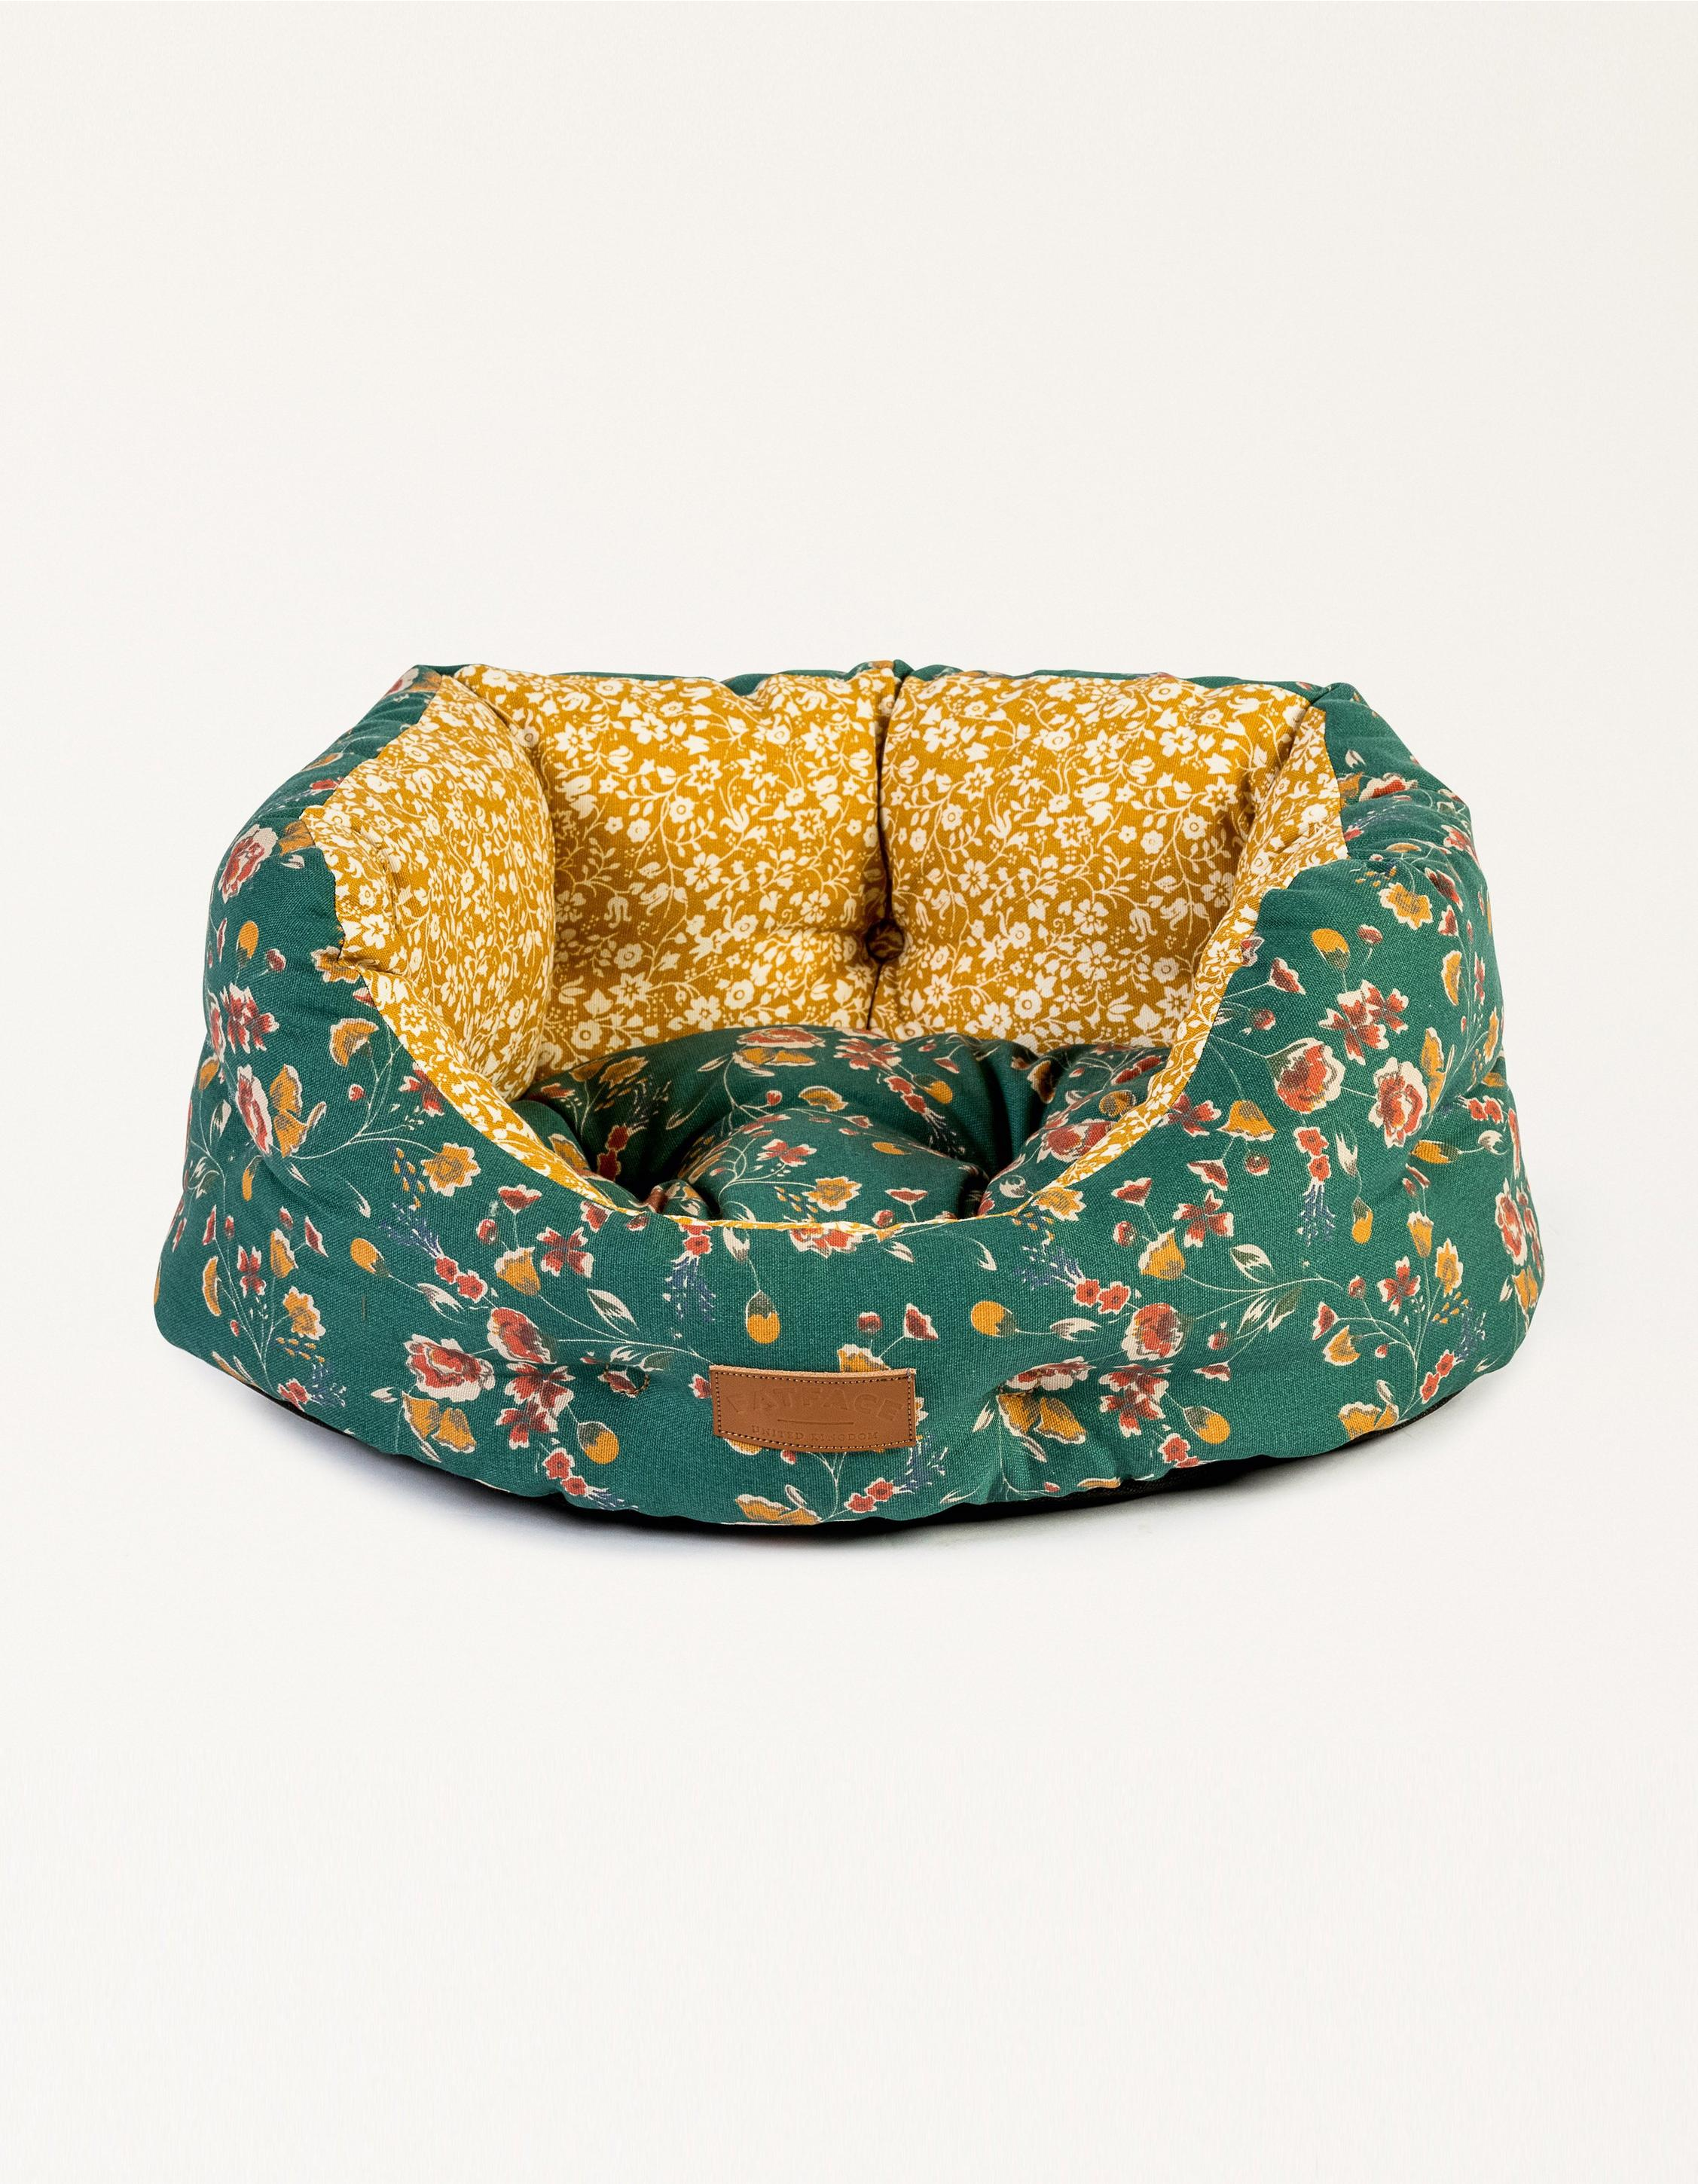 Fatface Bed Floral